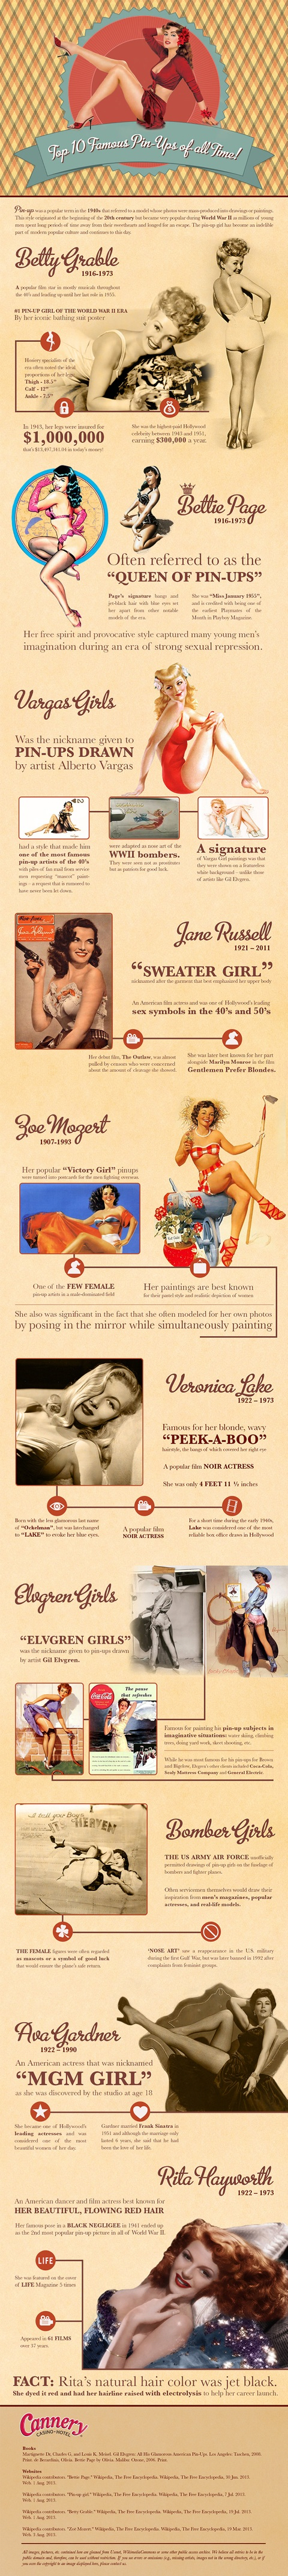 Famous_Pinups_Infographic_CanneryCasinoHotel